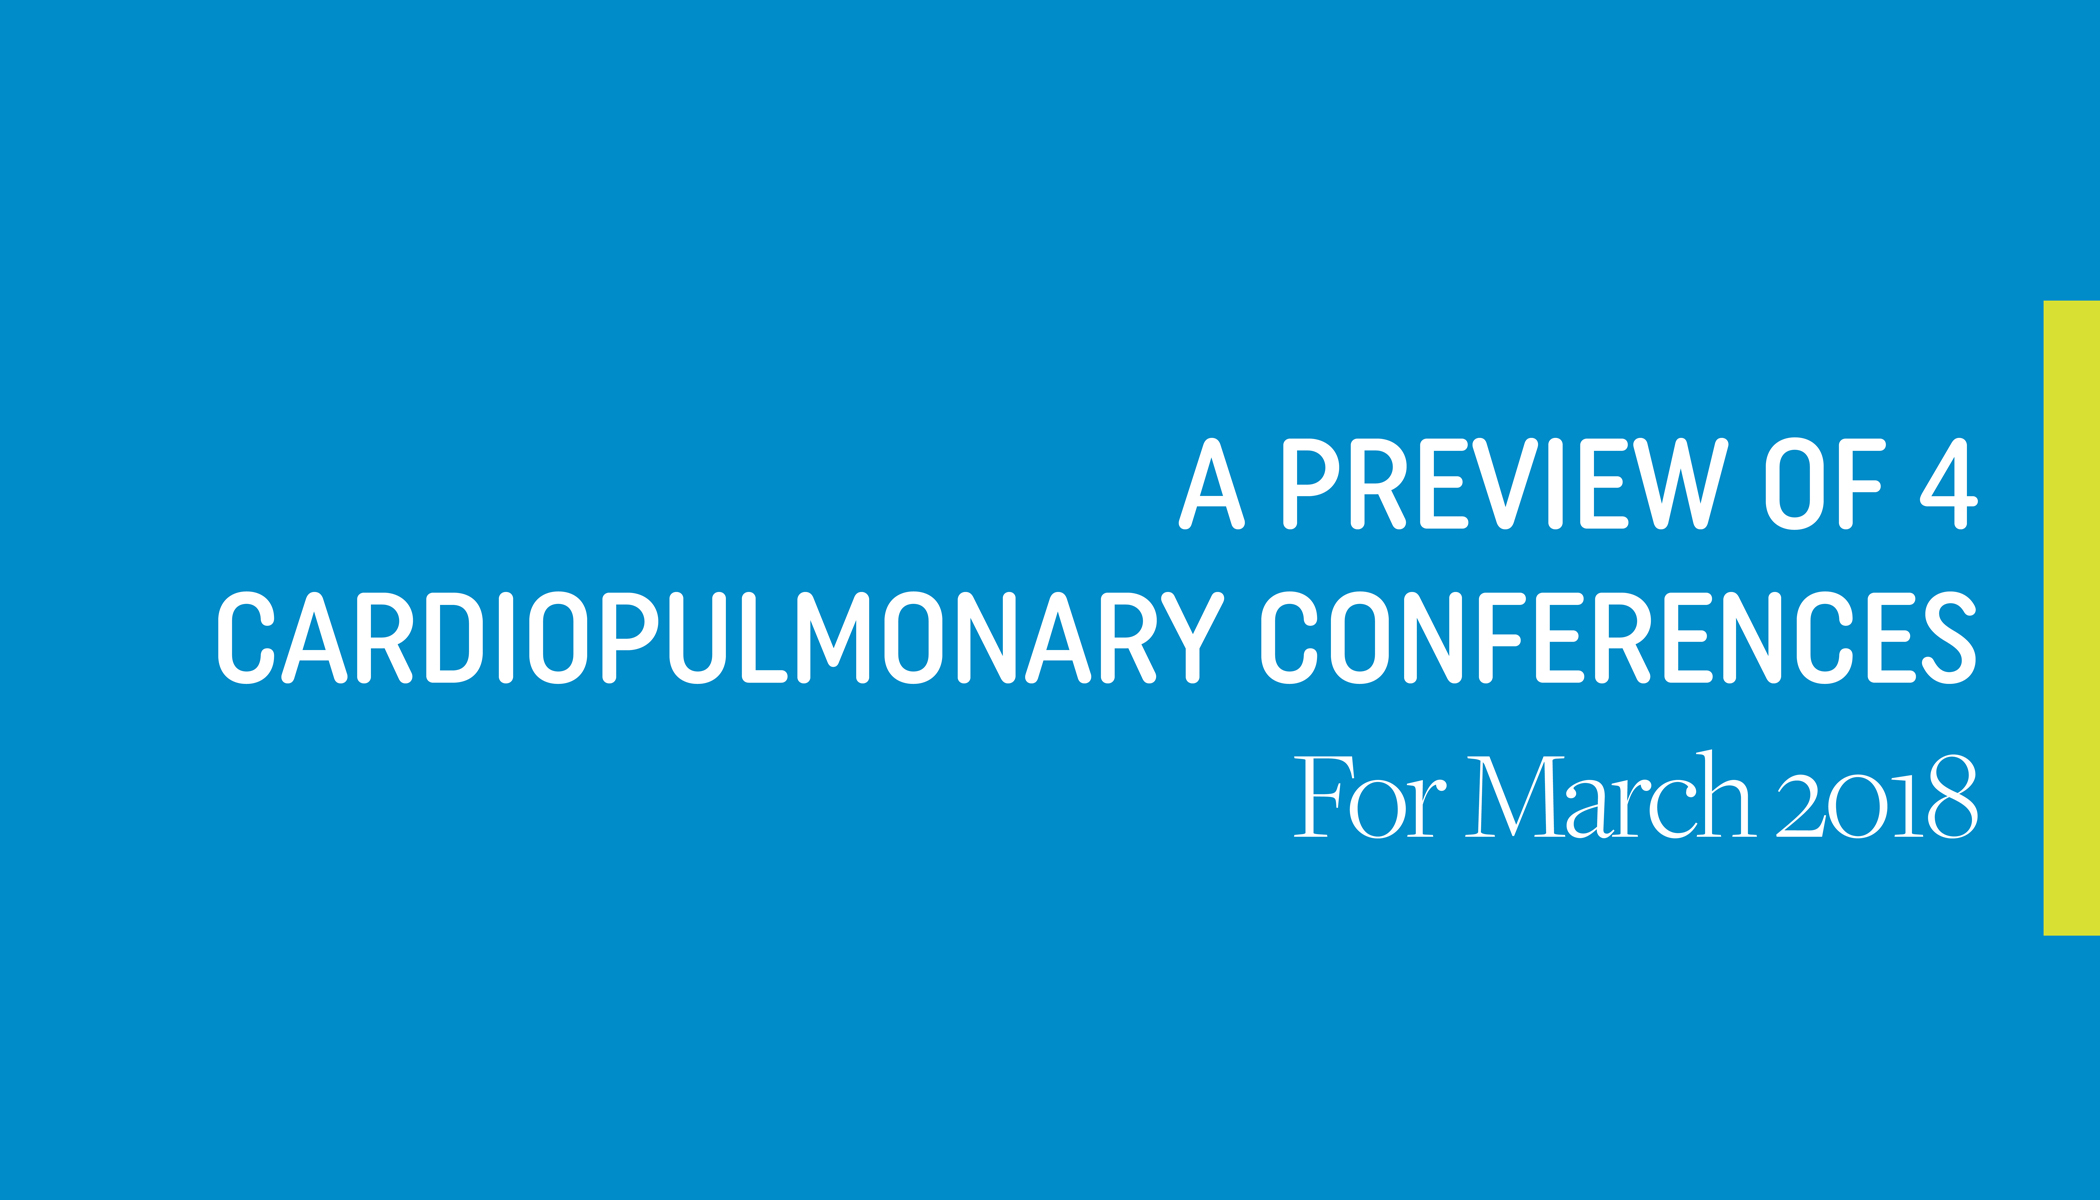 Don't Miss LSI at These 4 Cardiac and Pulmonary Conferences in March